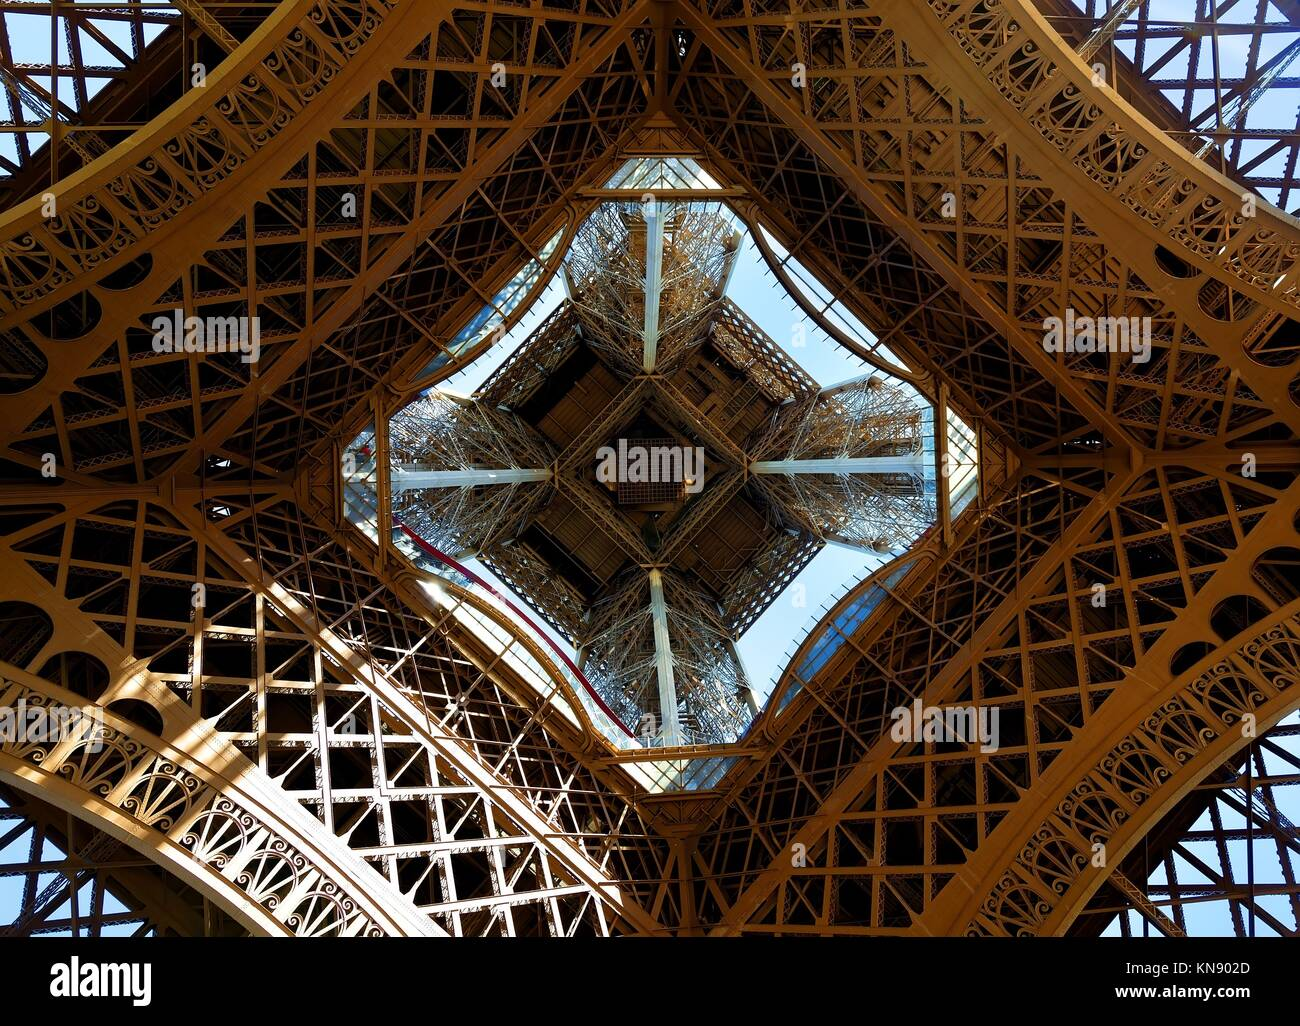 View on Eiffel Tower in Paris from below, France. - Stock Image